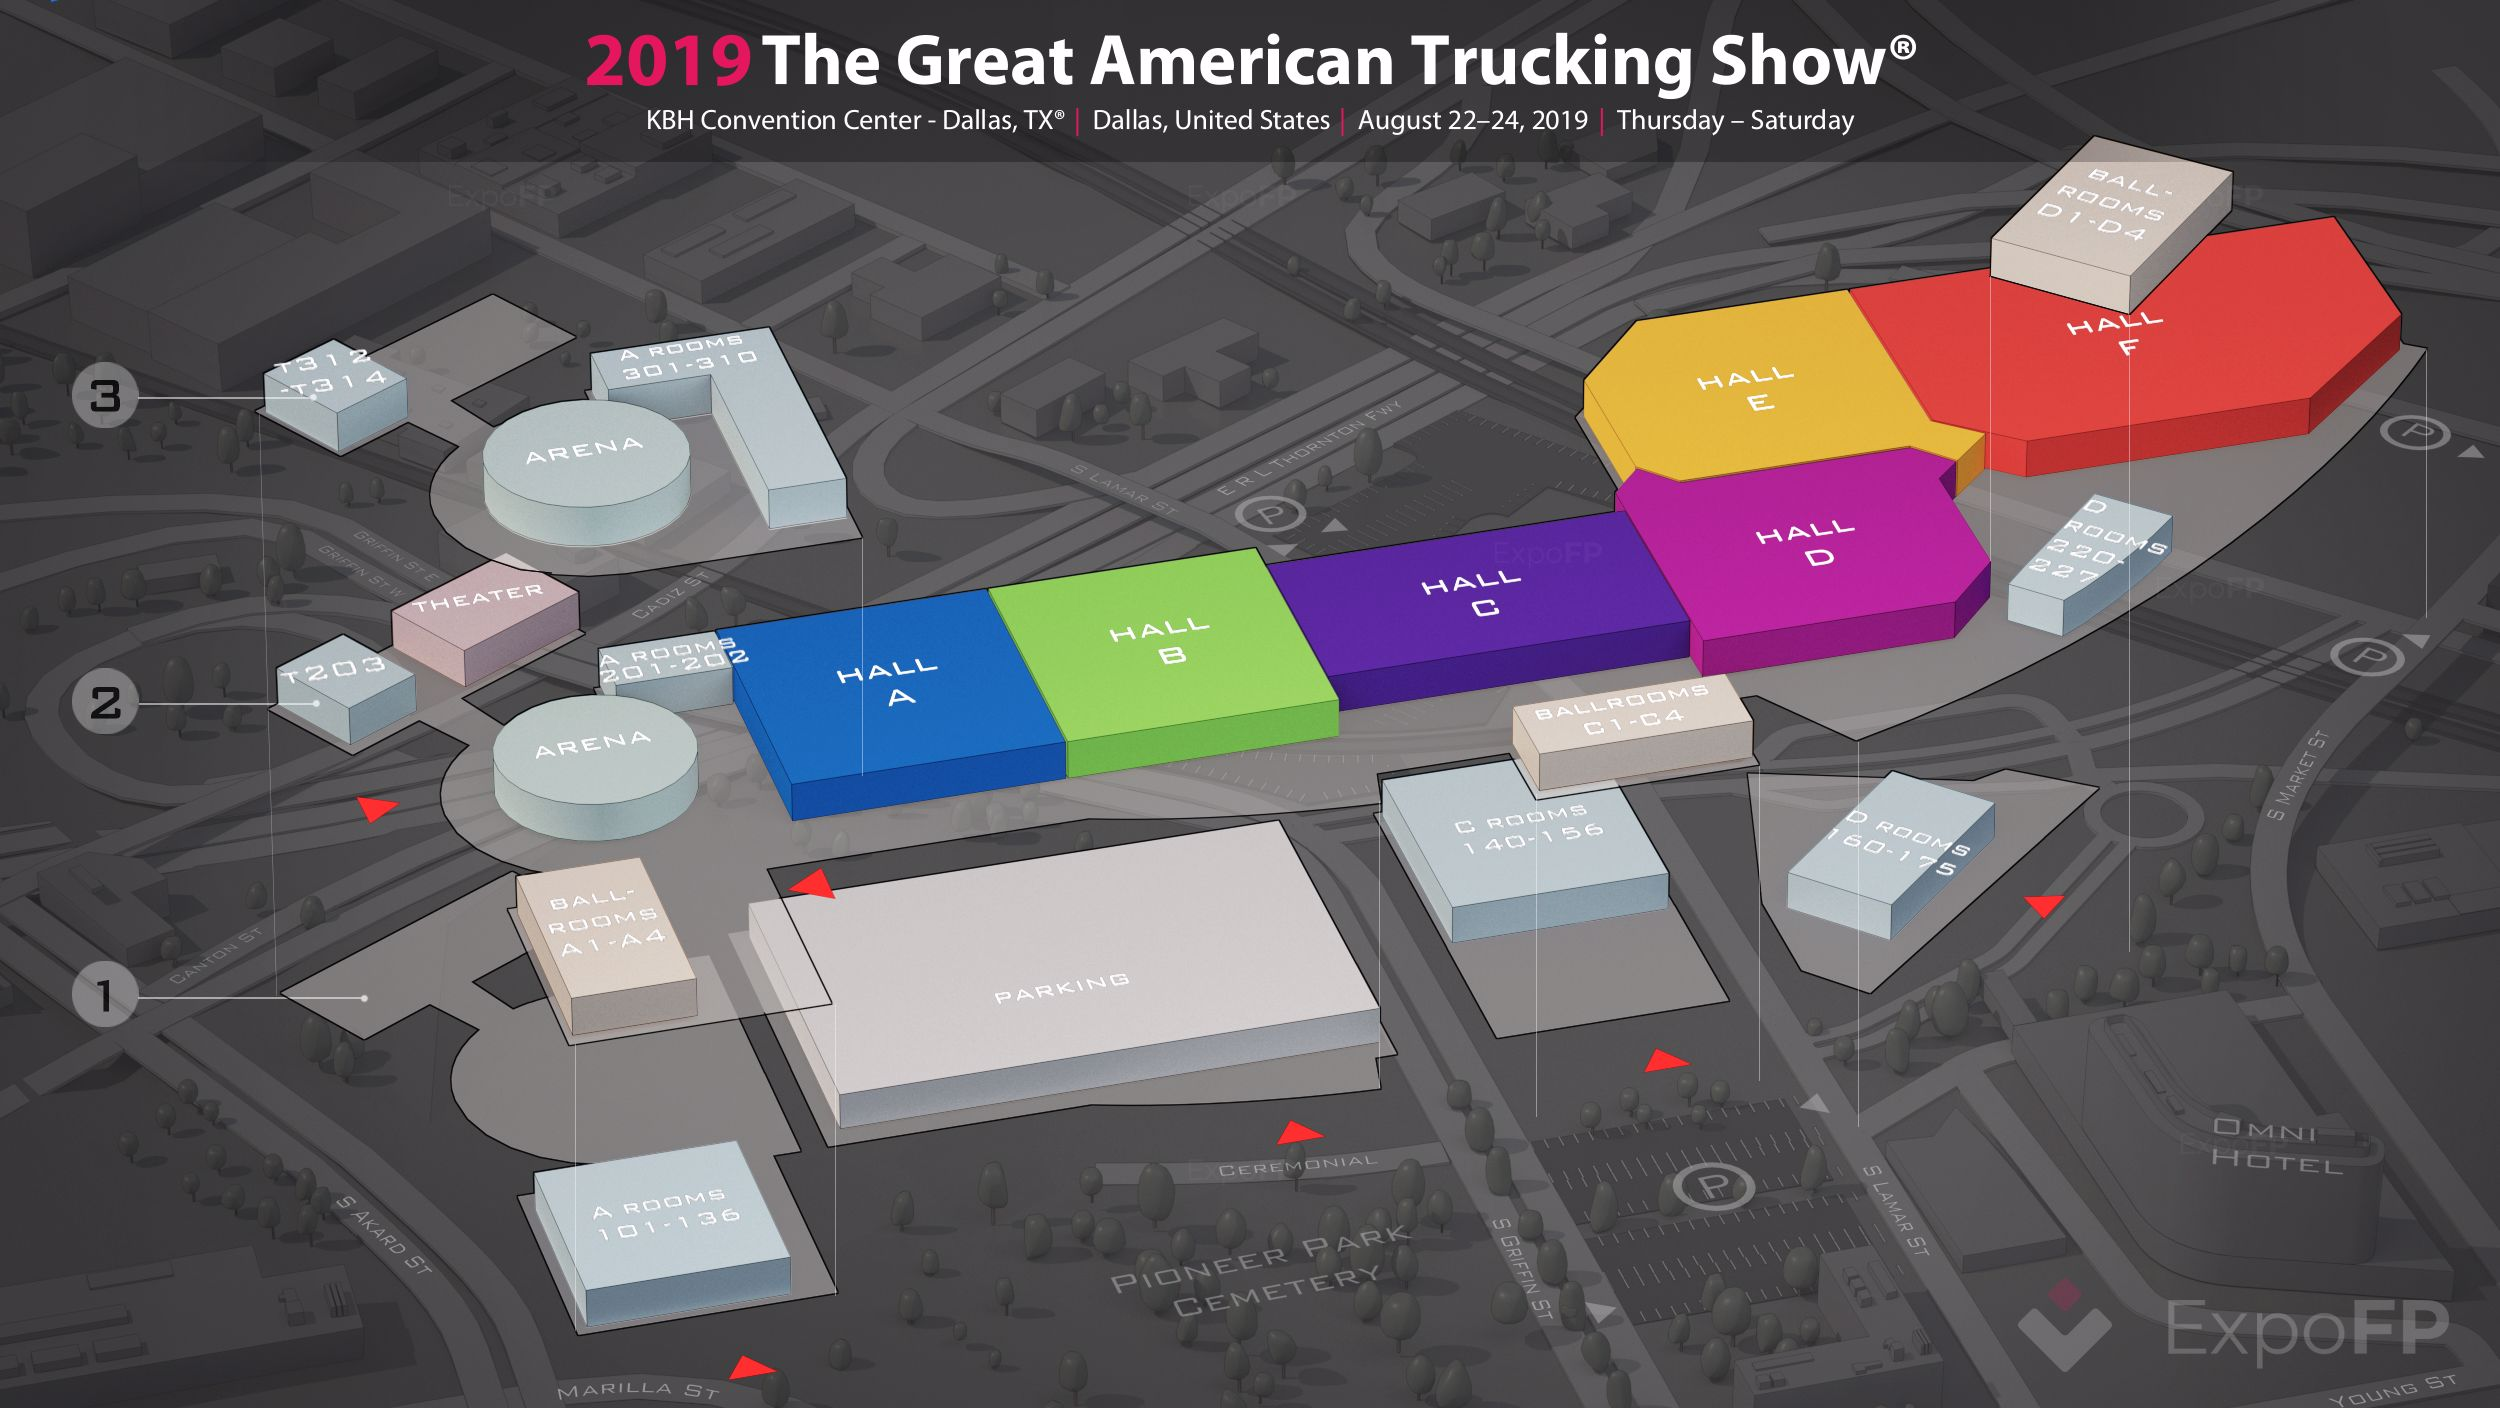 The Great American Trucking Show 2019 in KBH Convention